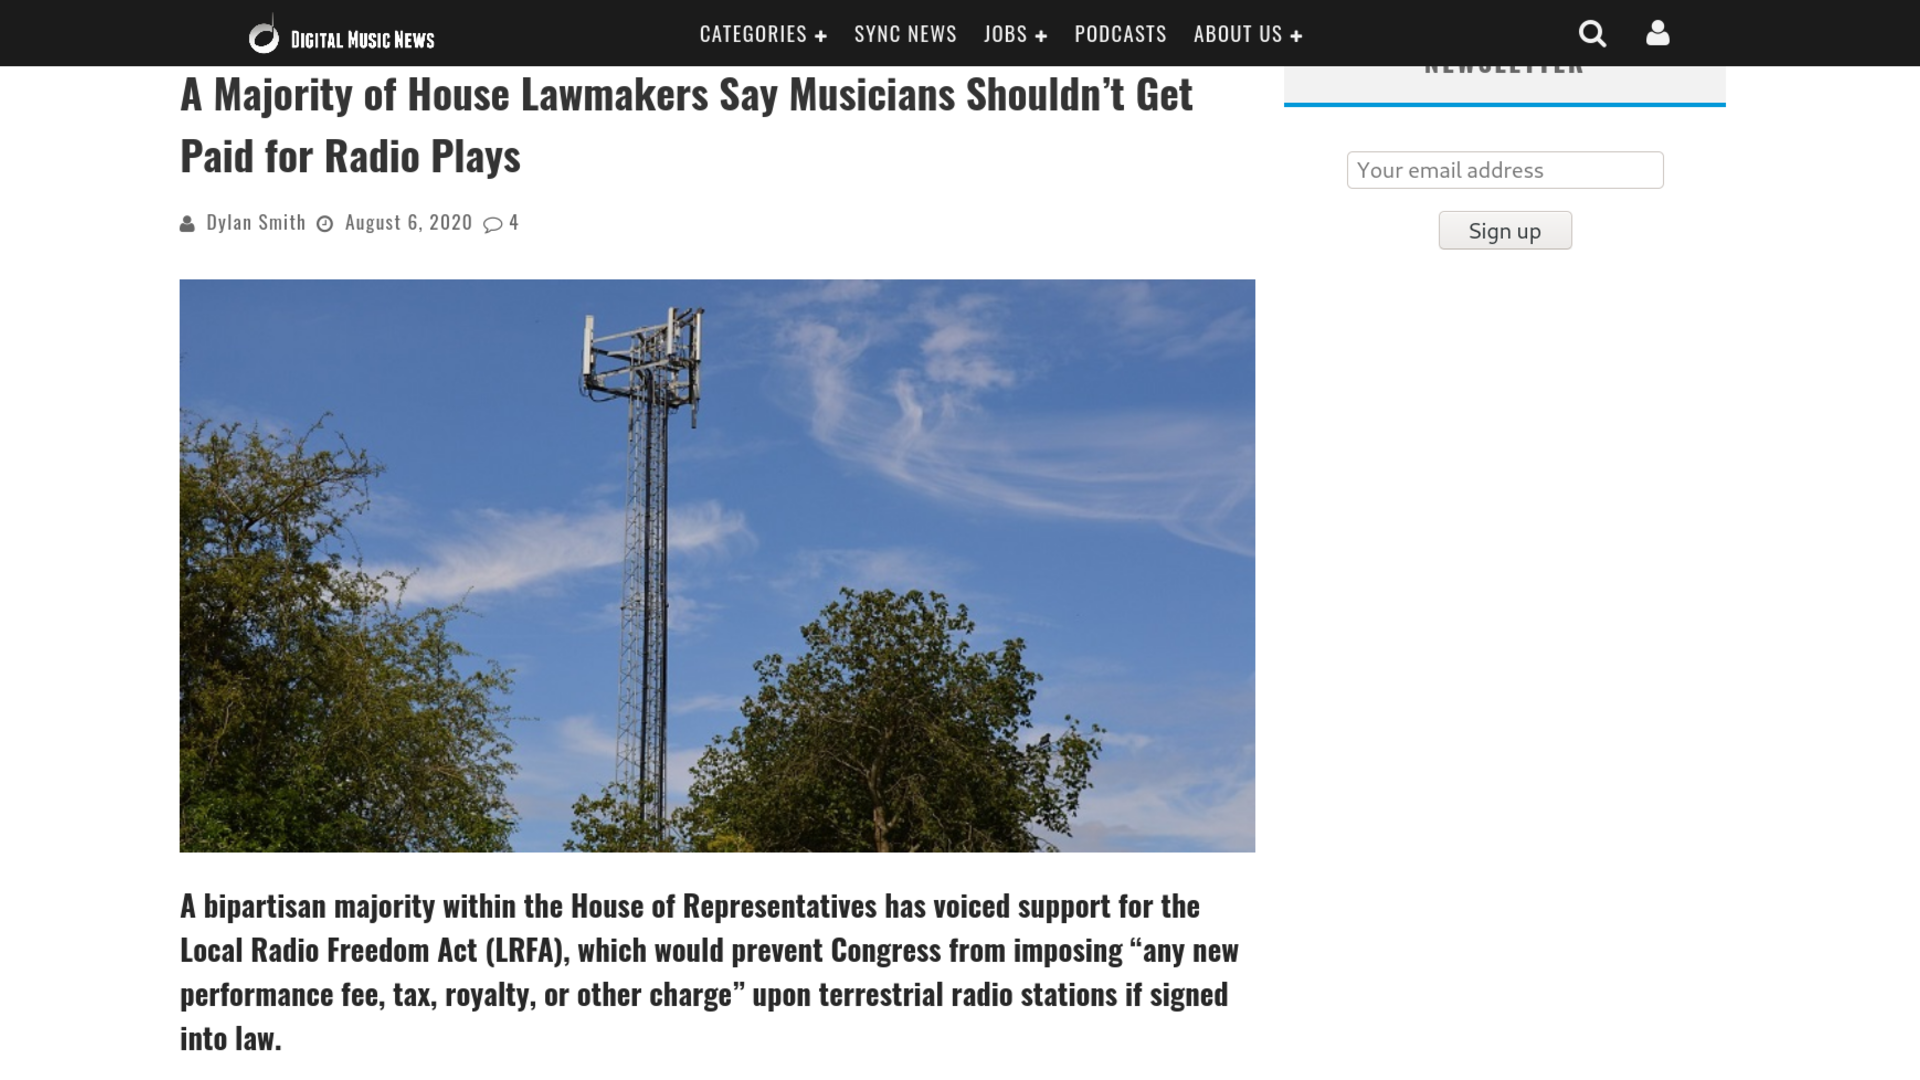 Fairness Rocks News A Majority of House Lawmakers Say Musicians Shouldn't Get Paid for Radio Plays